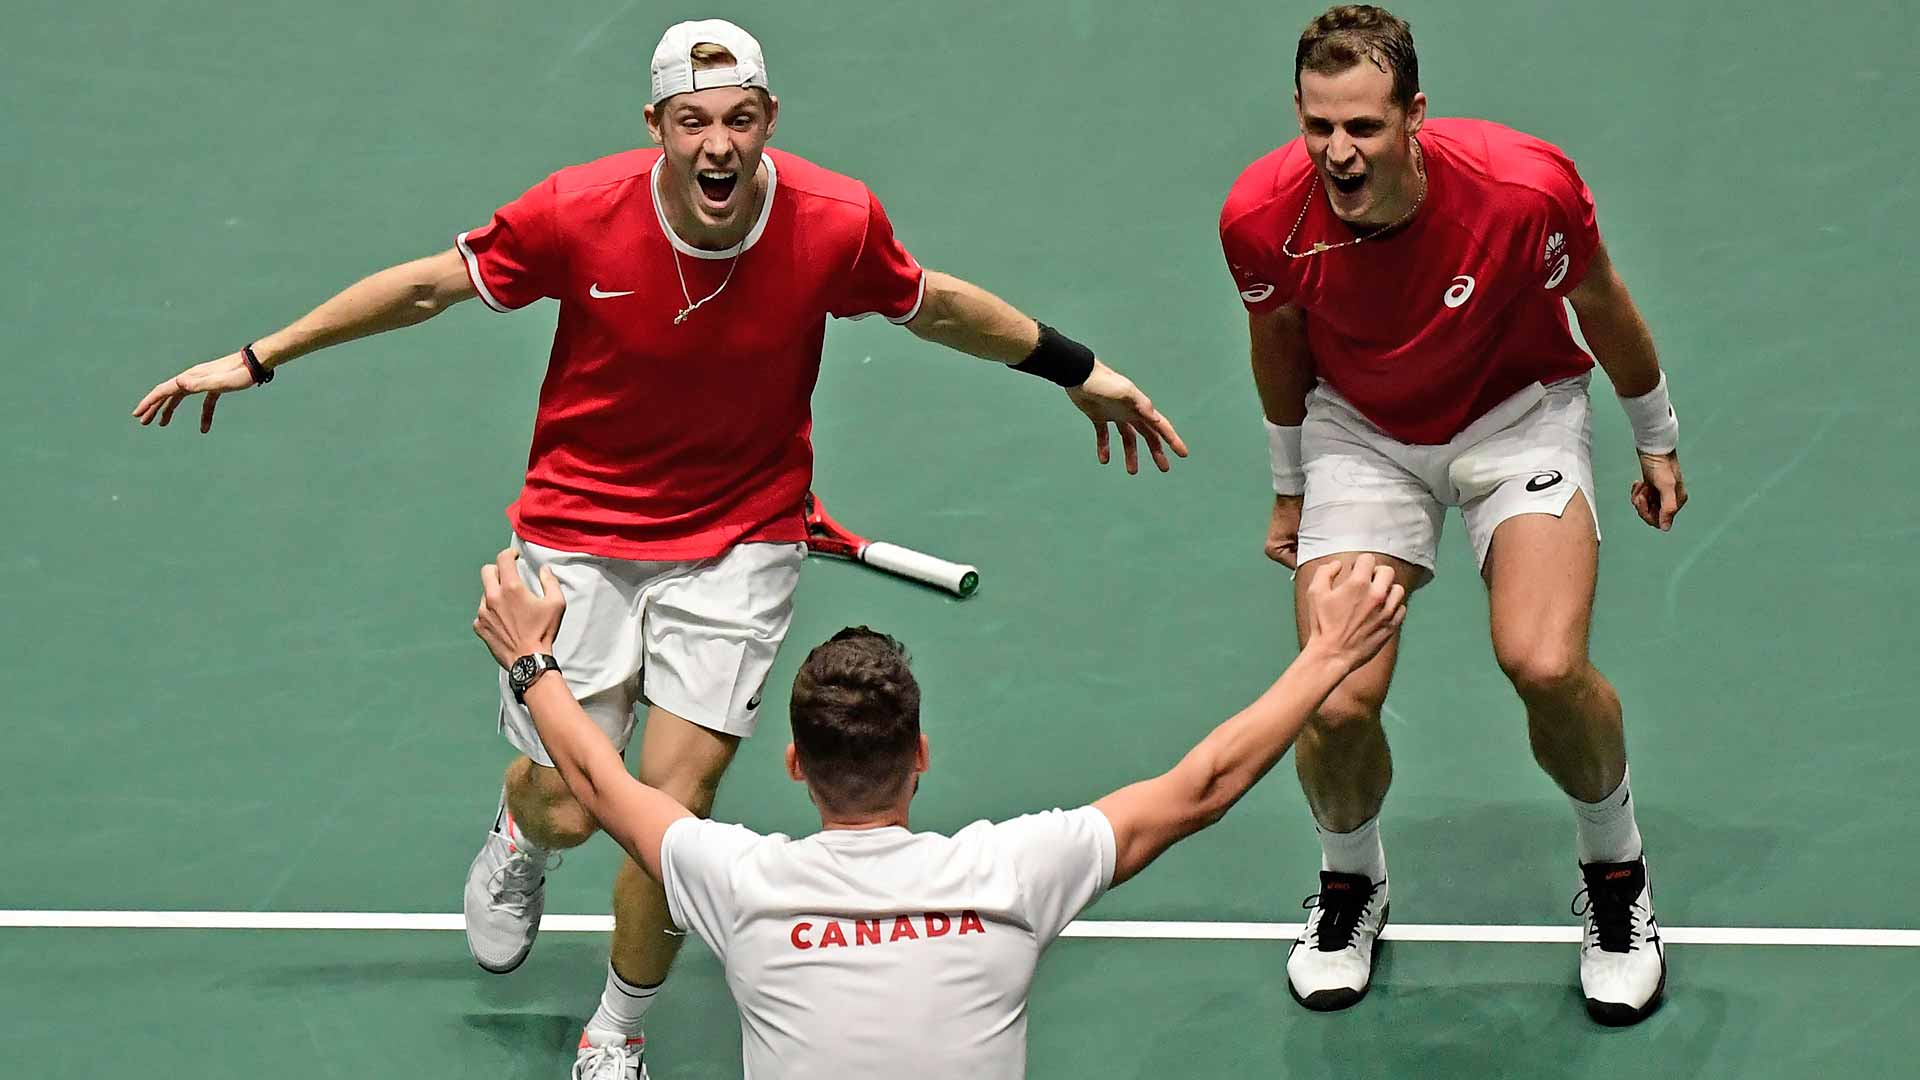 Davis Cup Finals – Day 5th